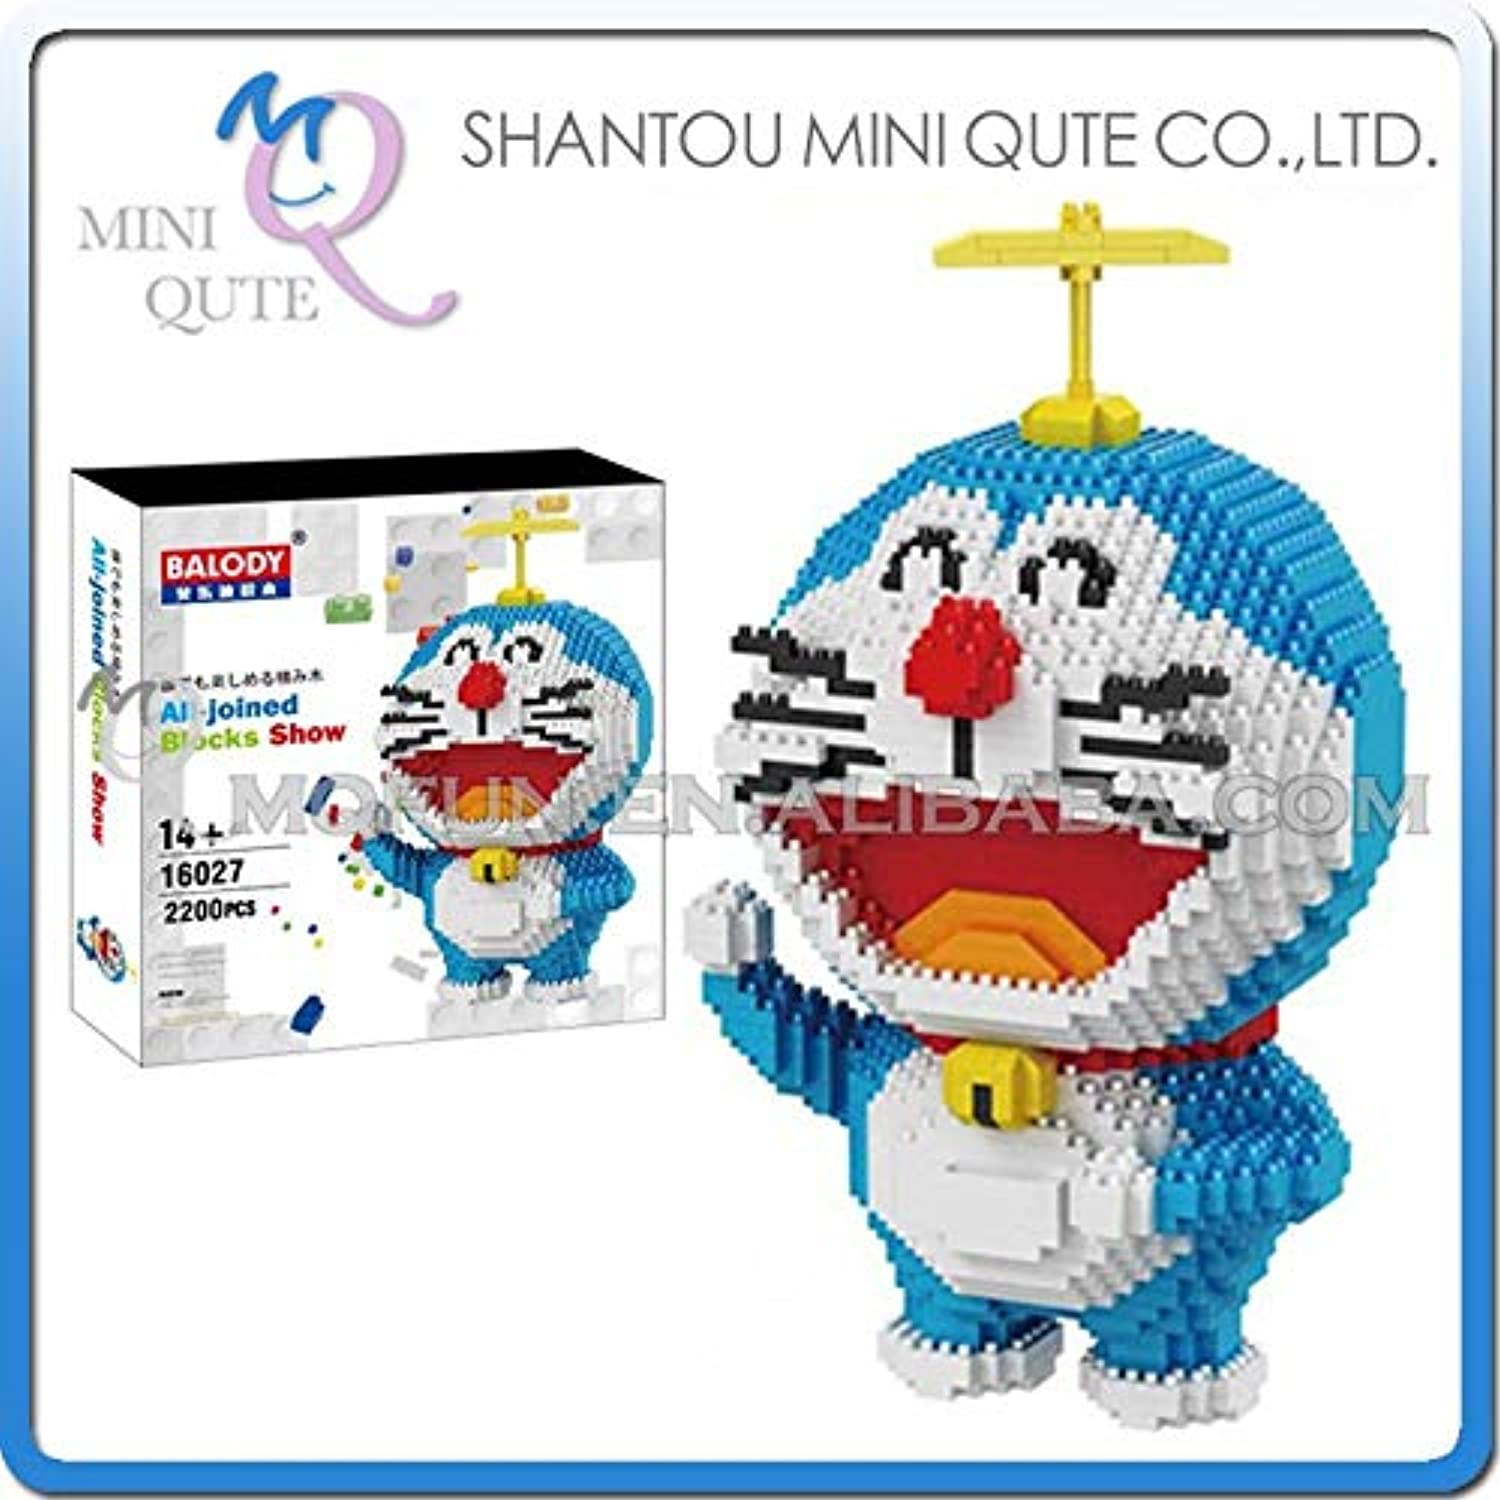 Generic Mini QUTE BALODY Huge Cartoon Fortune Cat Arale Simba Nick Doraemon Building Blocks Brick Action Figures Model Educational Toy BALODY 16027